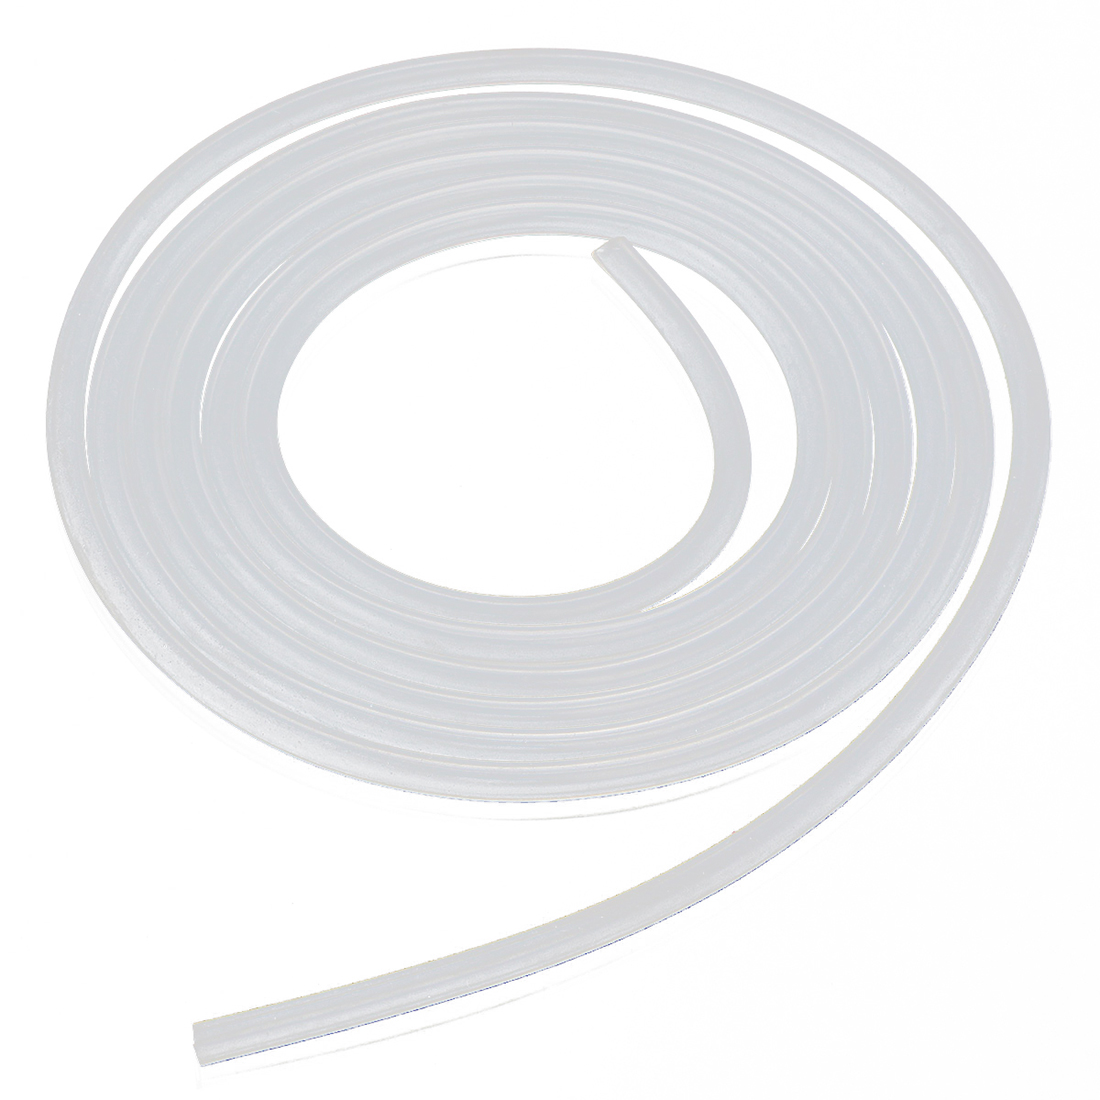 2 meter silicone tube silicone tube pressure hose highly flexible 5 * 7mm Food Grade Transparent Flexible Silicone Rubber Hose 5meters 12x18 transparent silicone rubber tube hose pipe food grade medical pipe100% virgin free shipping